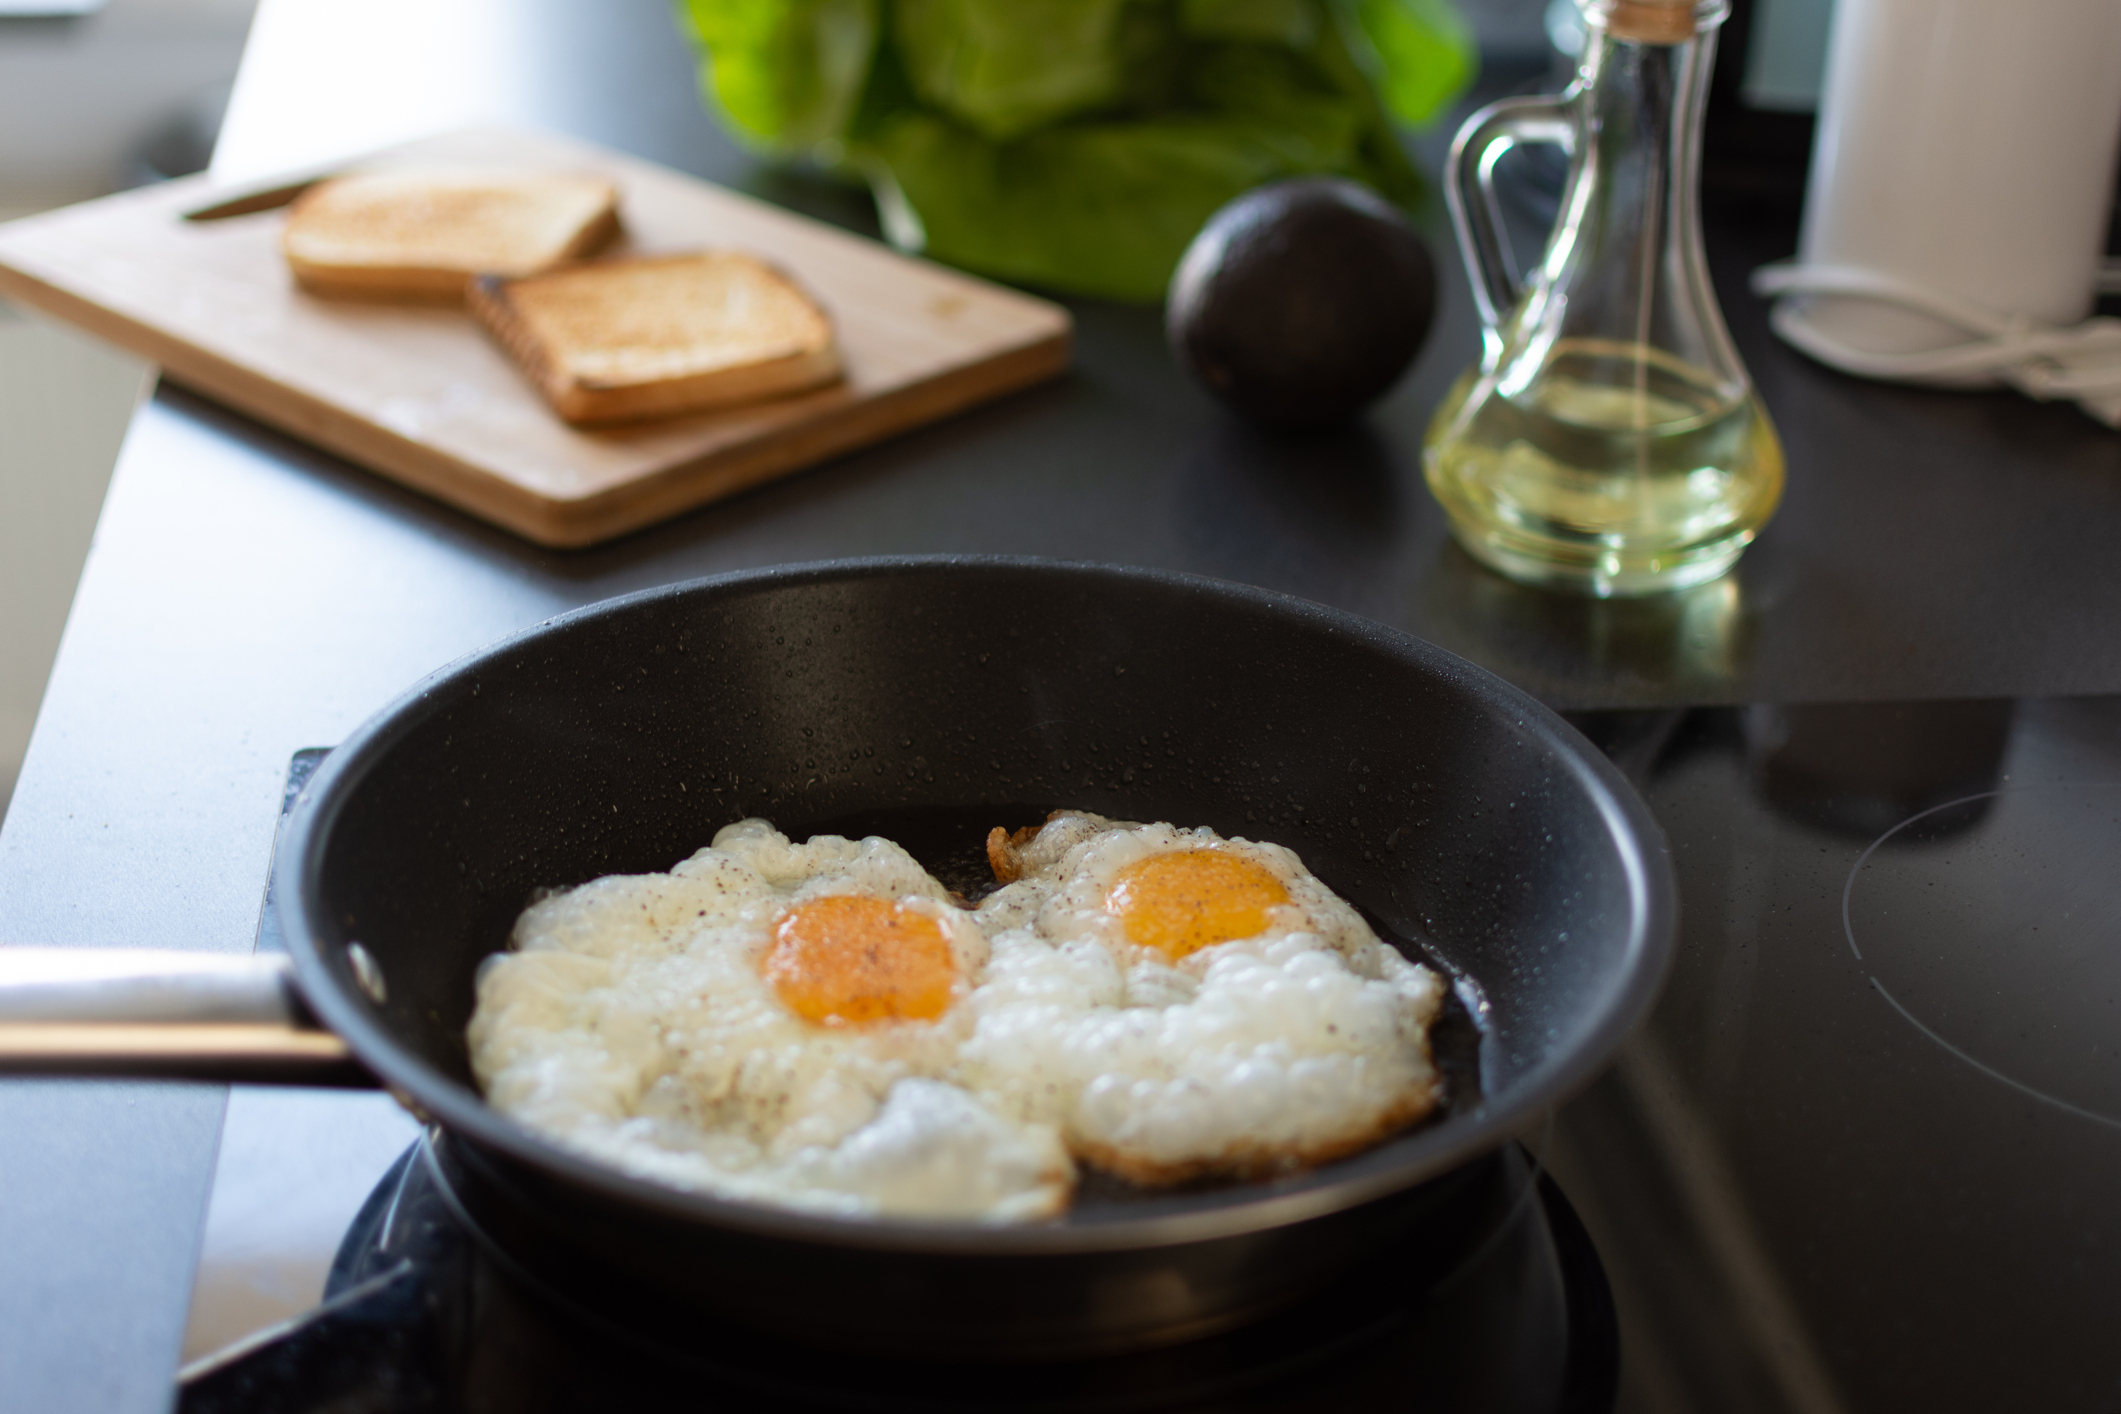 making eggs on a induction cooktop